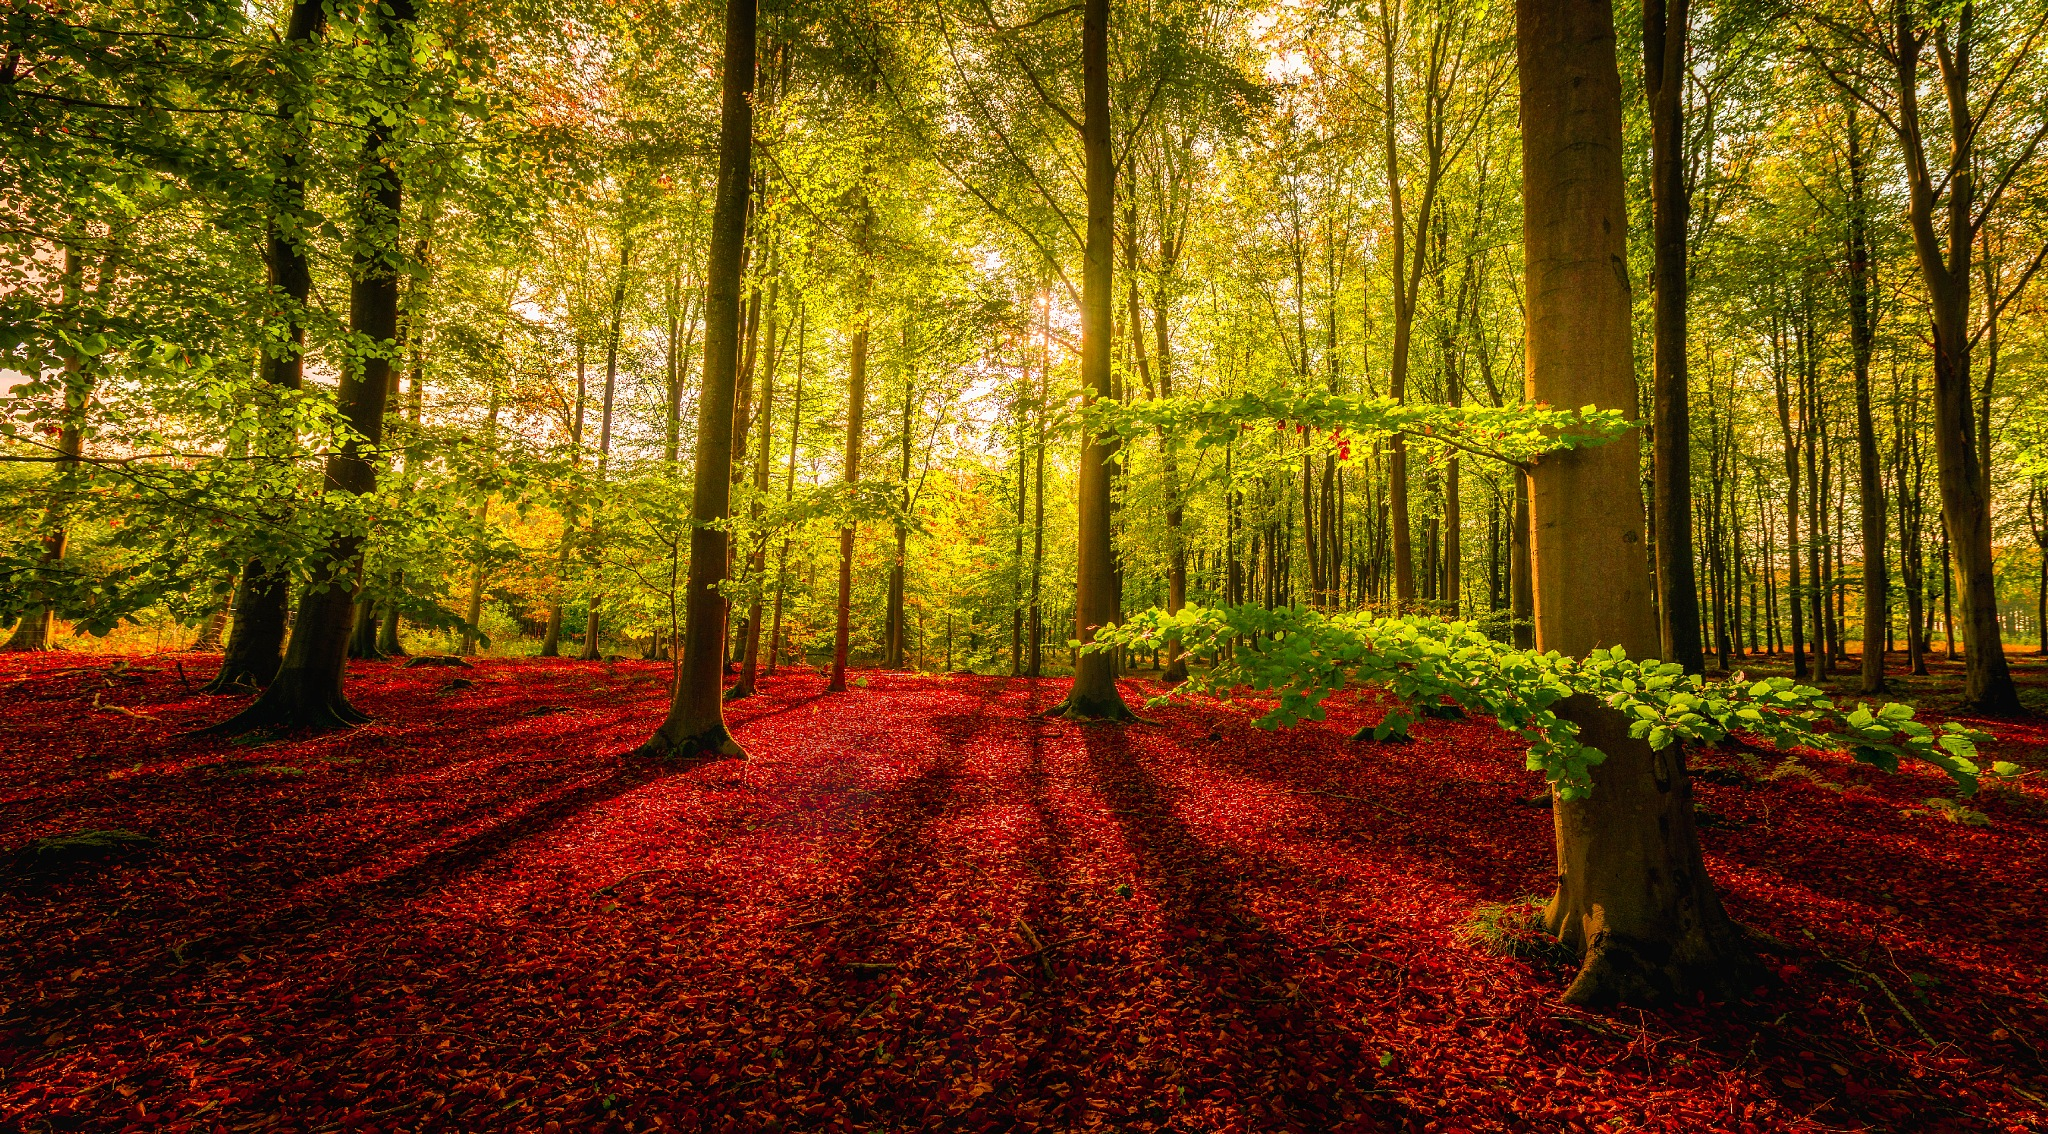 Afternoon light at local forest by Ermedin Islamcevic